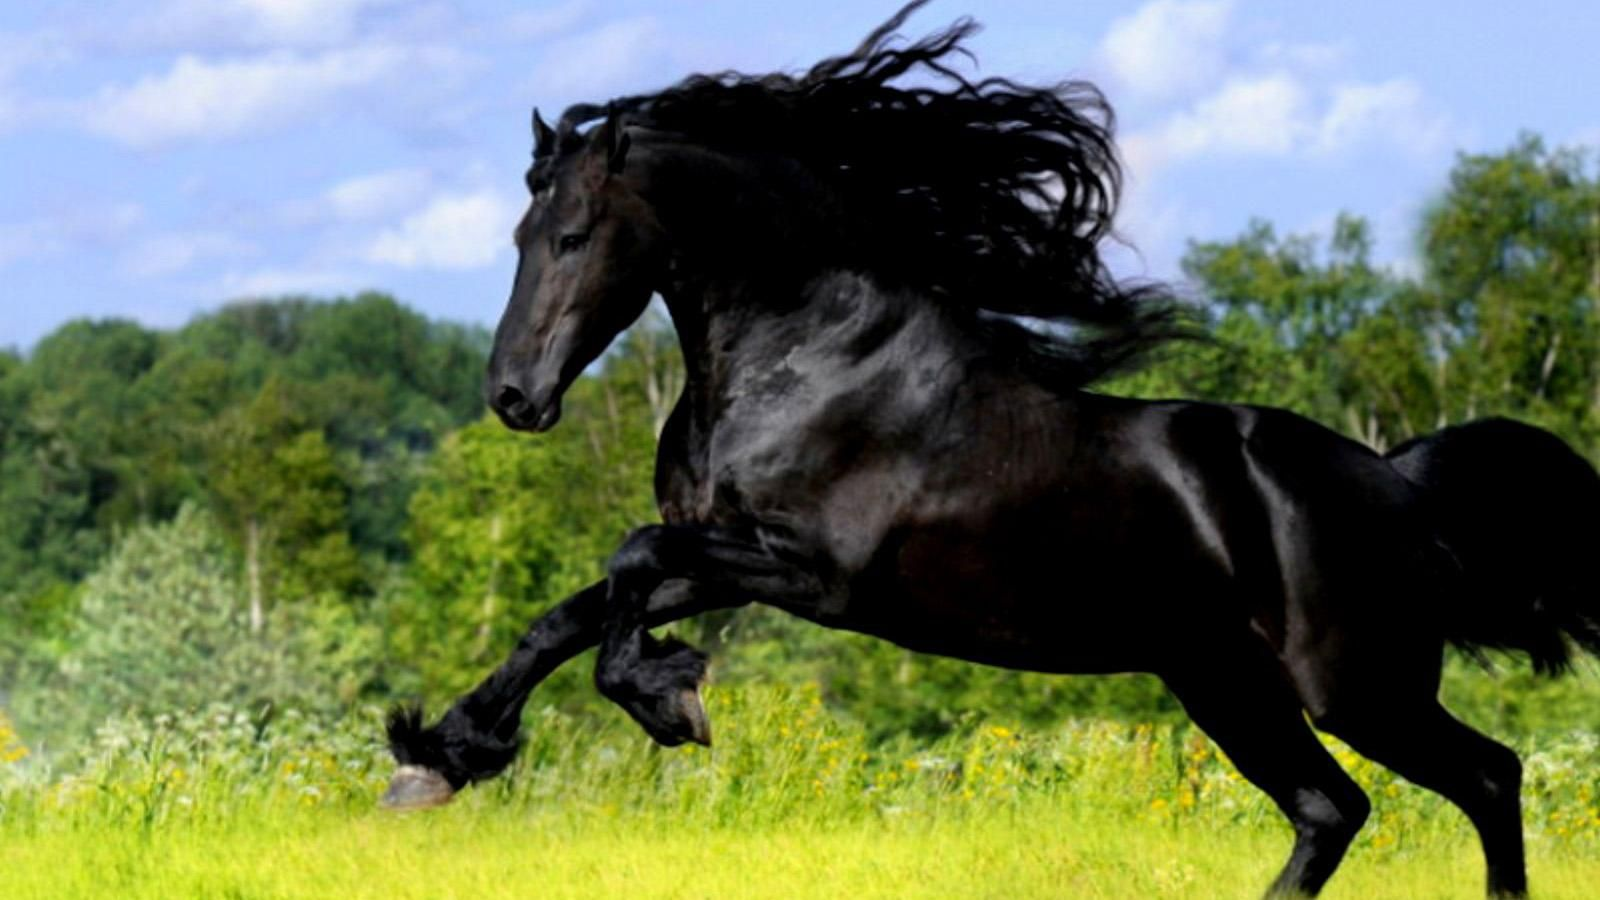 Beautiful Wallpaper Horse Android - 23f0ed56189f7919631eabda0afdb486  Collection_68125.jpg